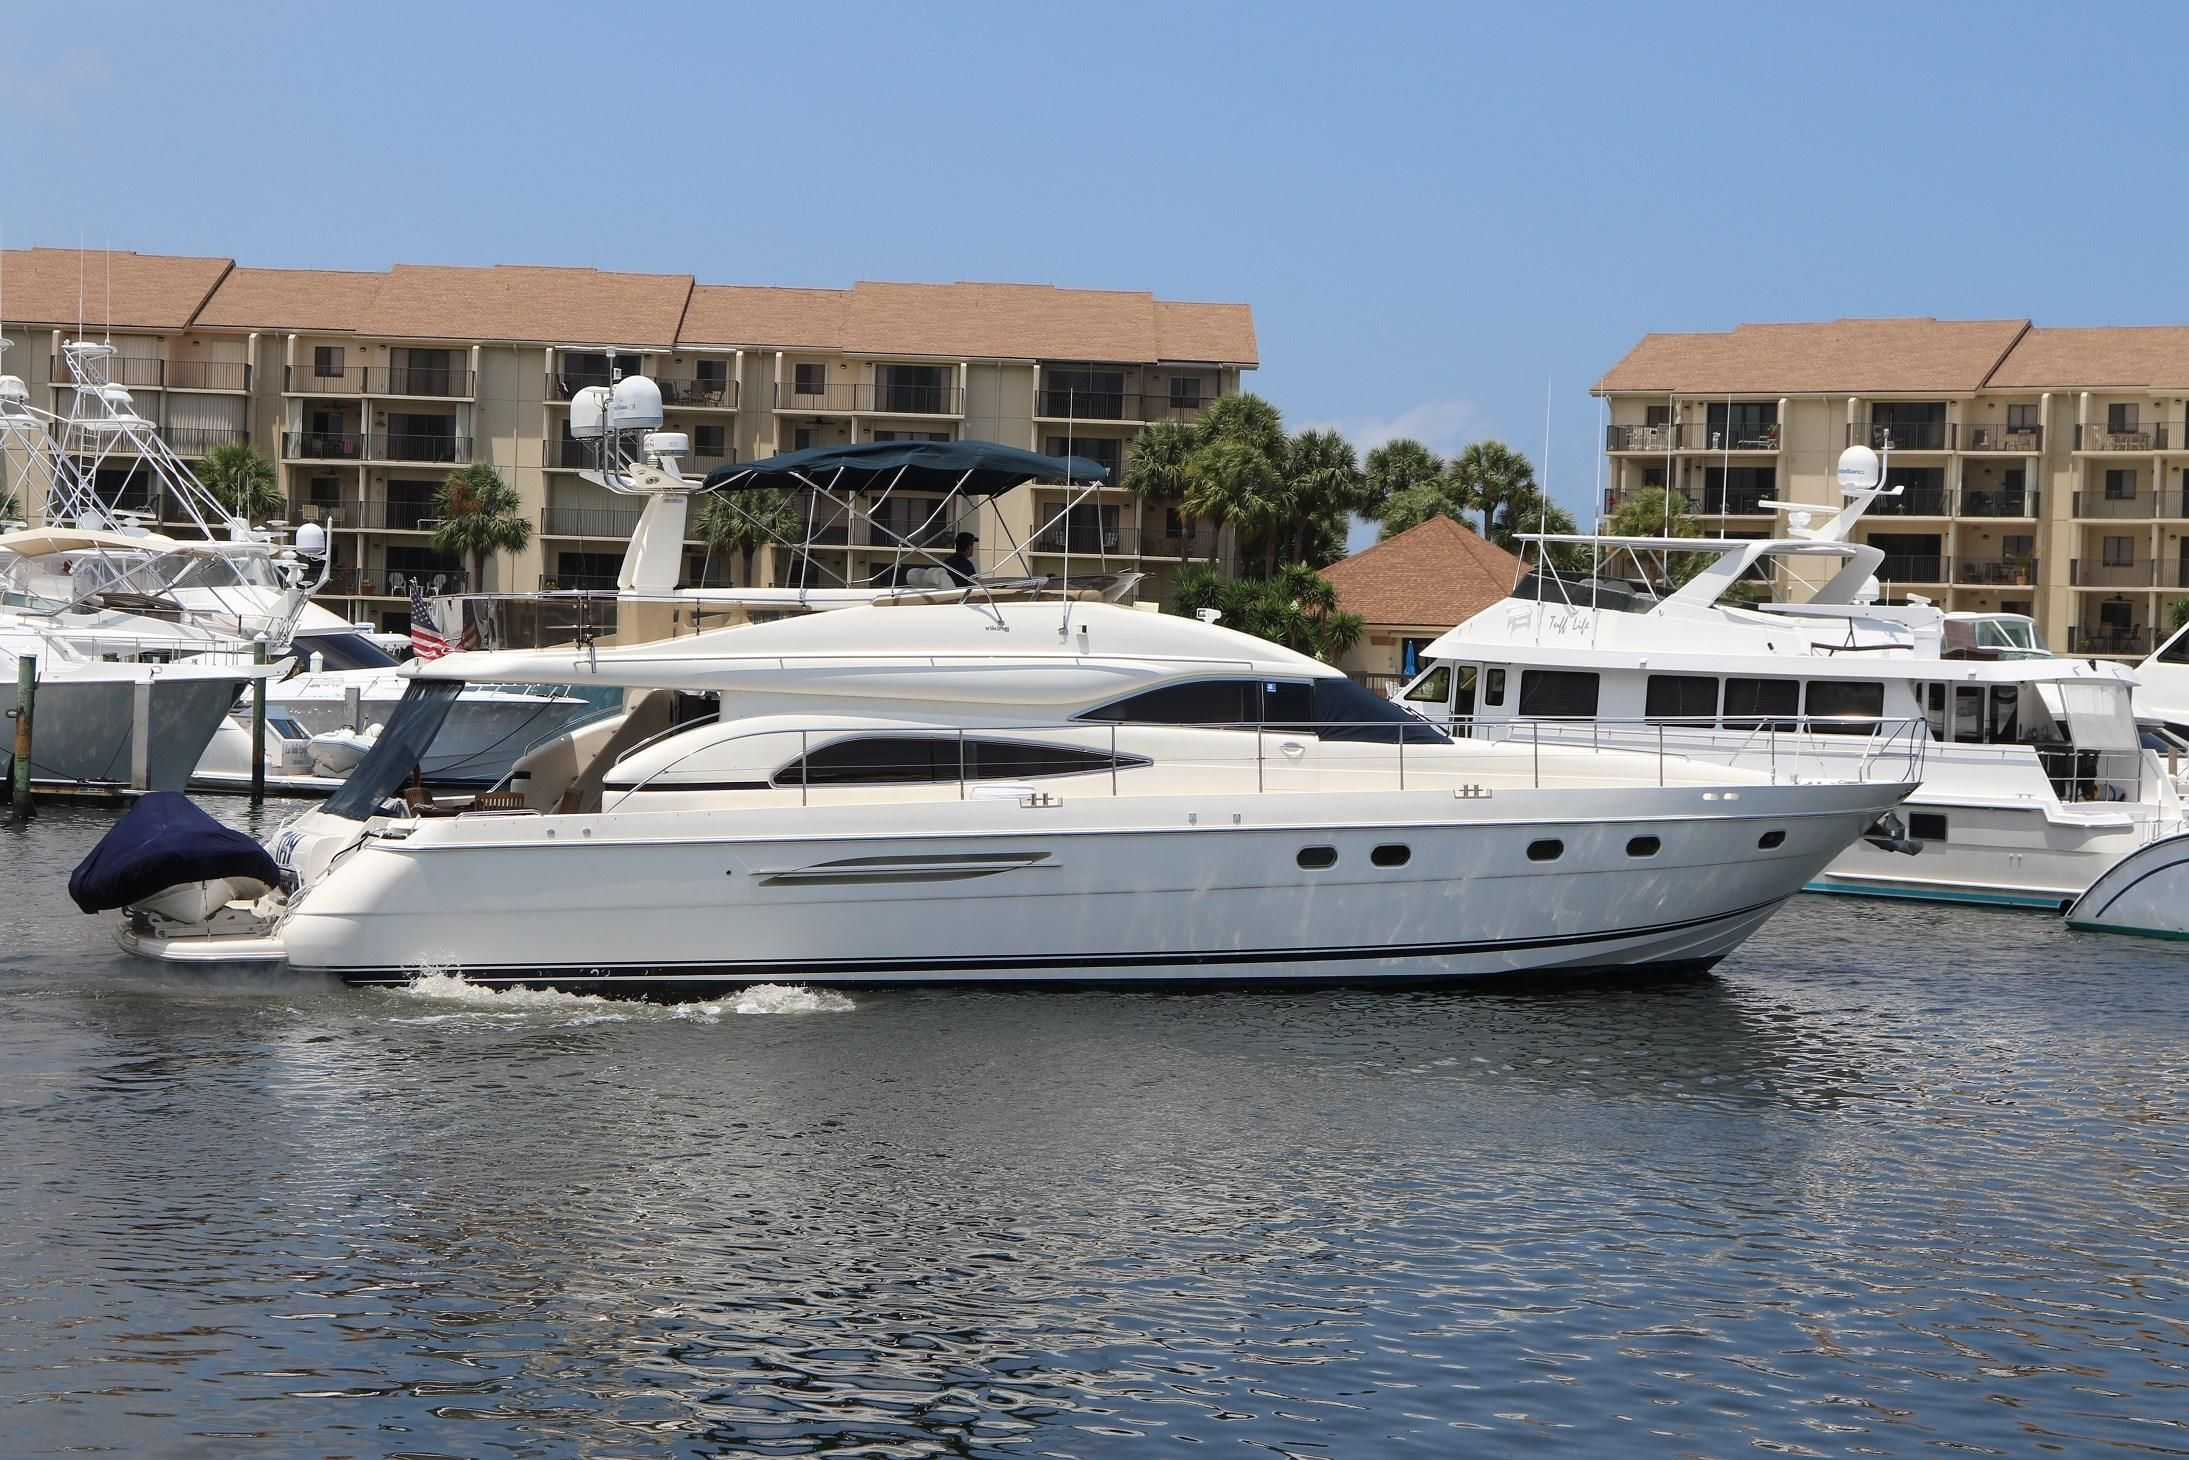 2002 Viking Princess 65 Motor Yacht Power Boat For Sale